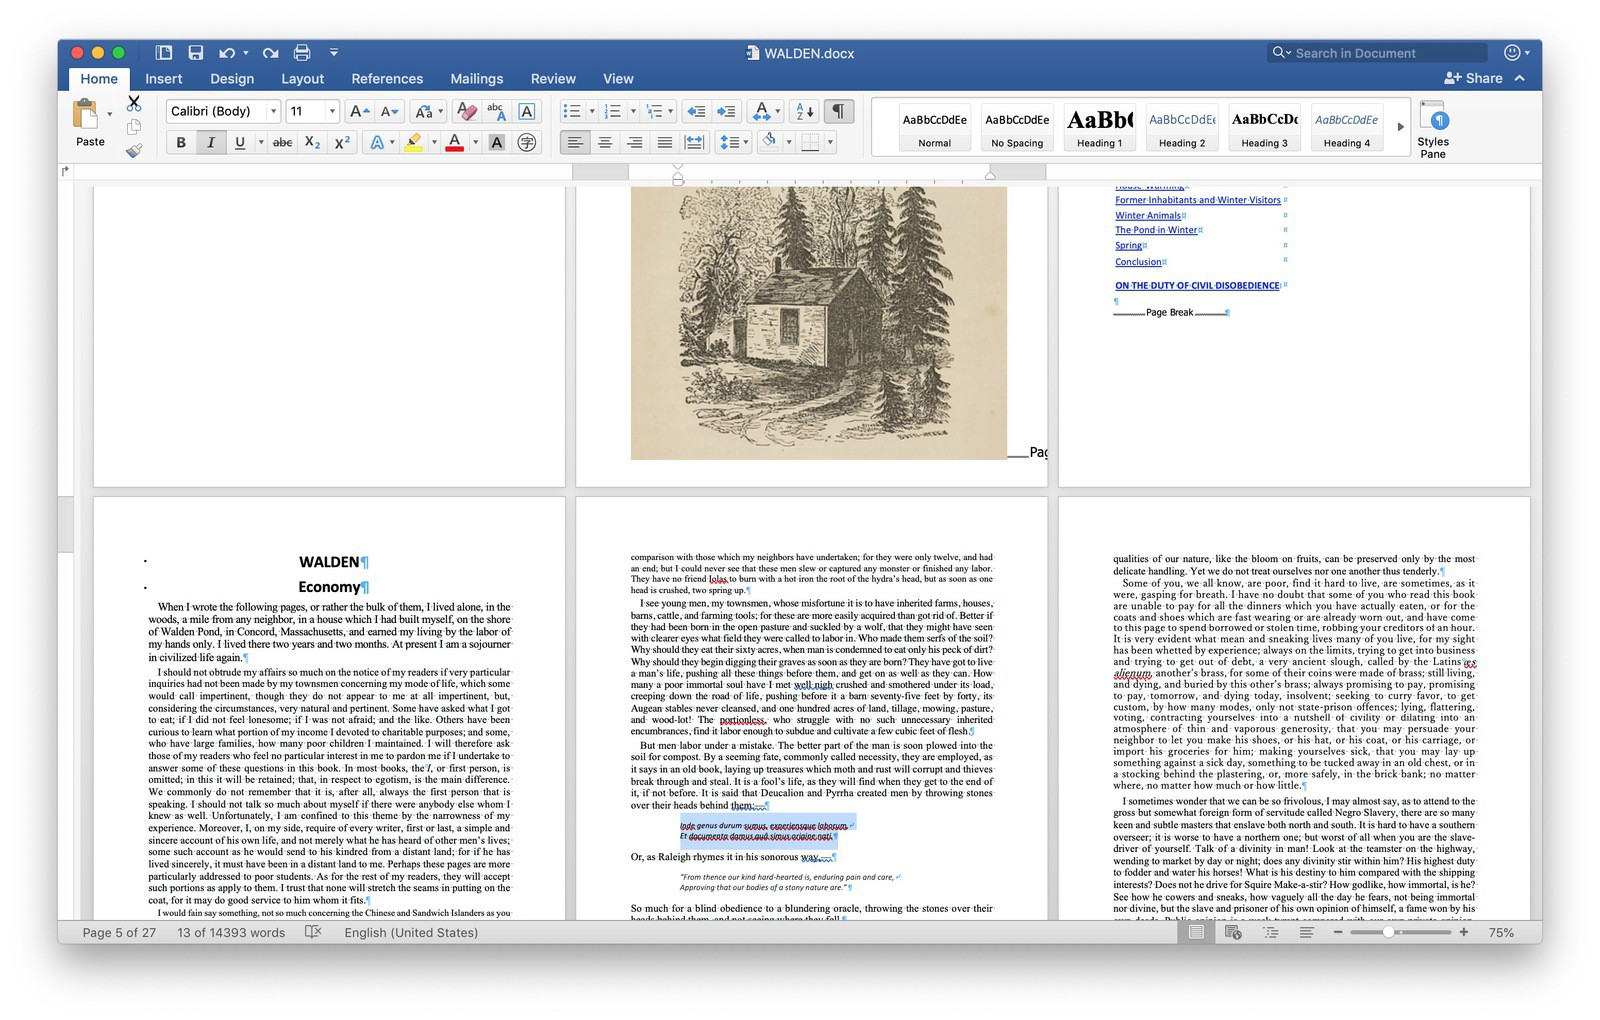 """A screen shot of Microsoft Word showing the book """"Walden"""" whose text styling shows multiple defects in font size, weight, etc"""